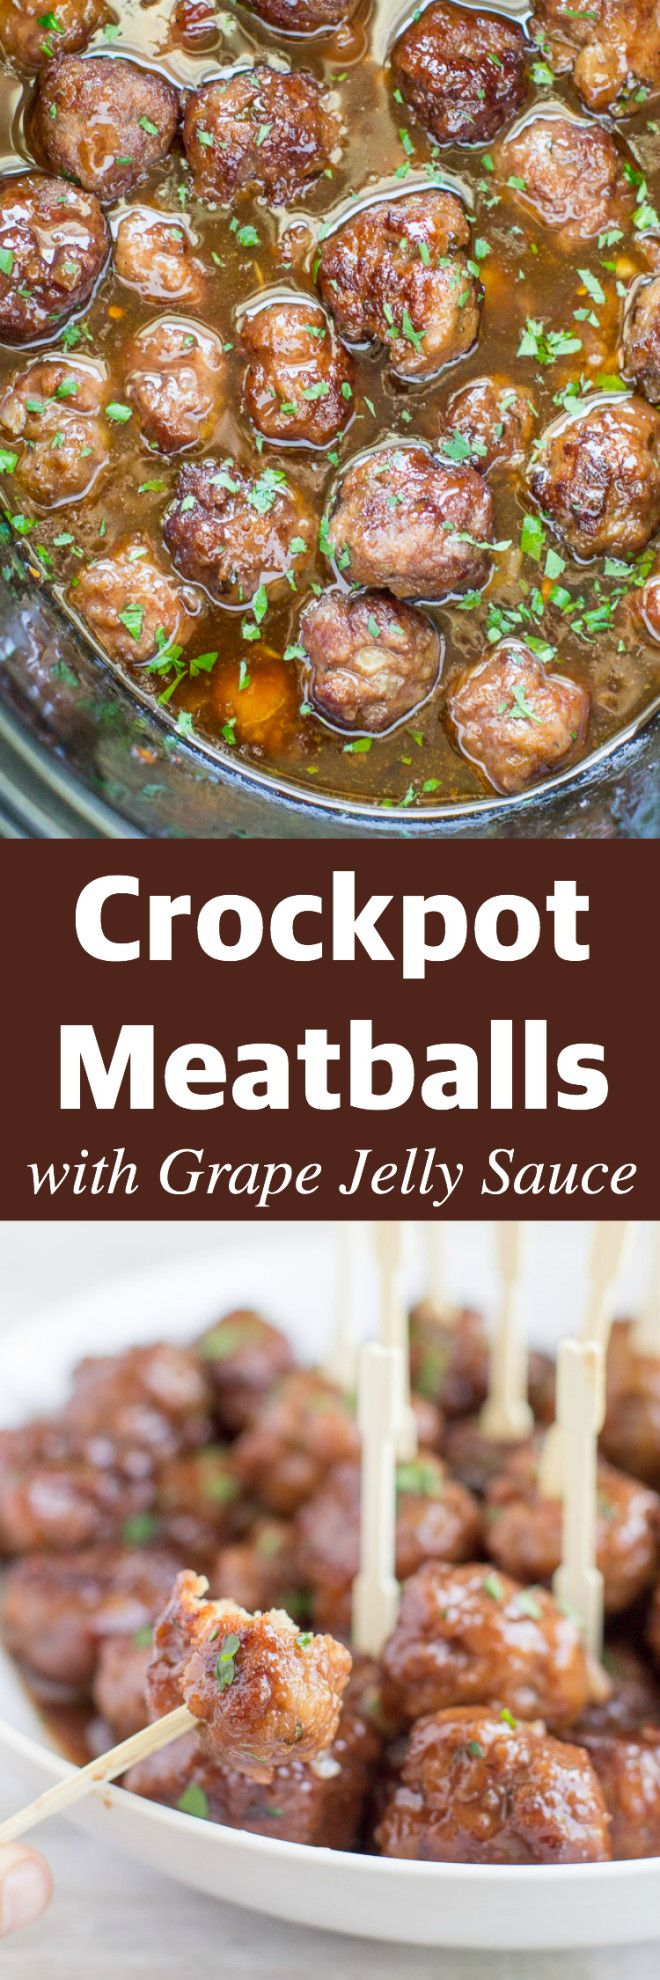 Homemade Crockpot Meatballs smothered in a sweet and tangy sauce made with grape jelly and chili sauce. Double or triple this recipe - they'll go fast!